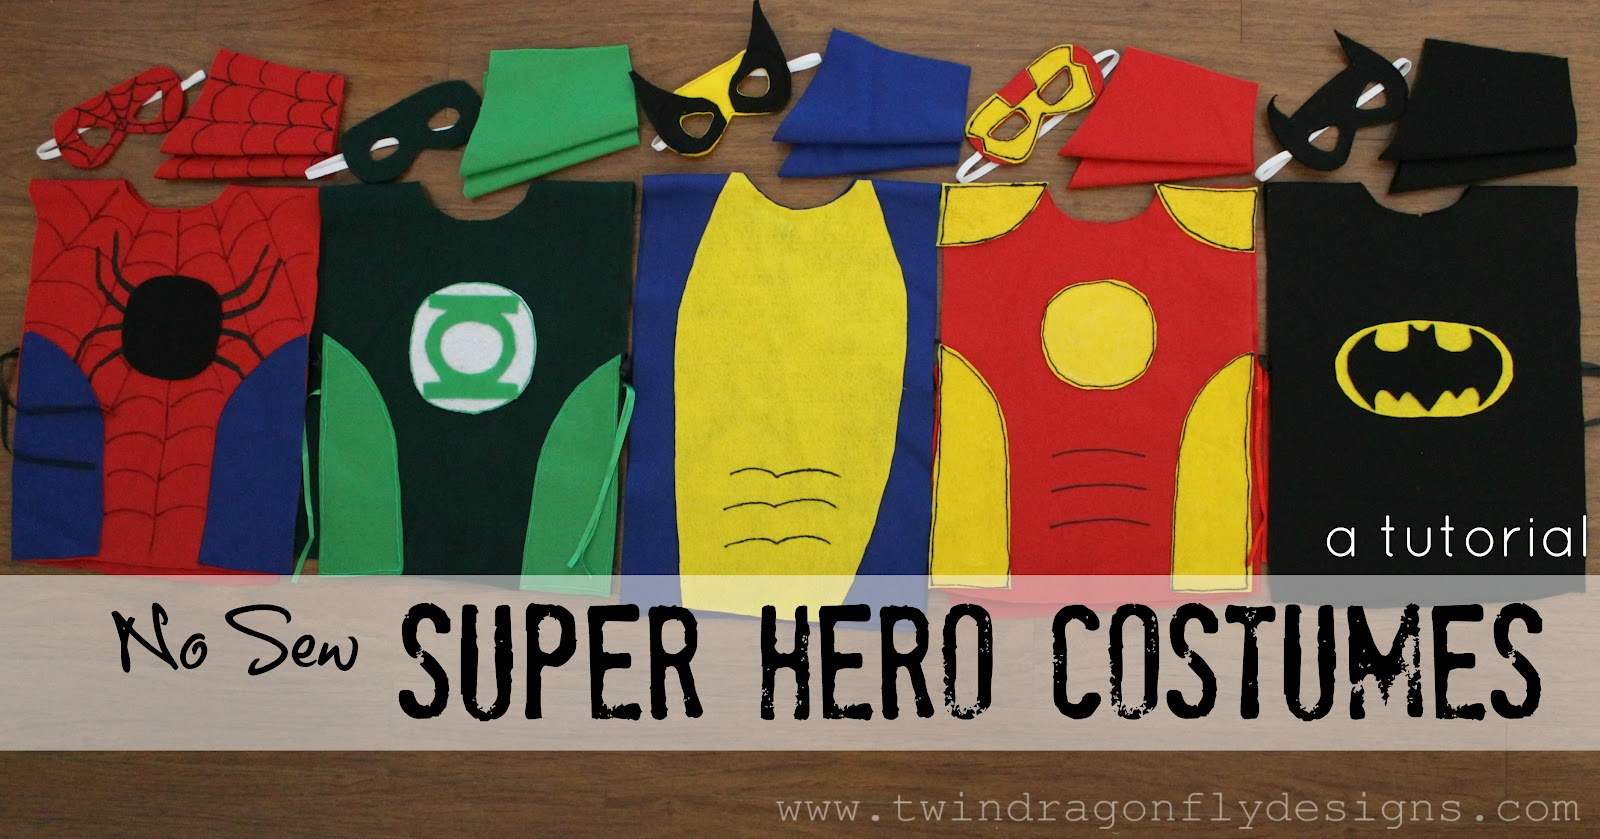 No Sew SUPER HERO COSTUMES Tutorial & No Sew SUPER HERO COSTUMES Tutorial » Dragonfly Designs